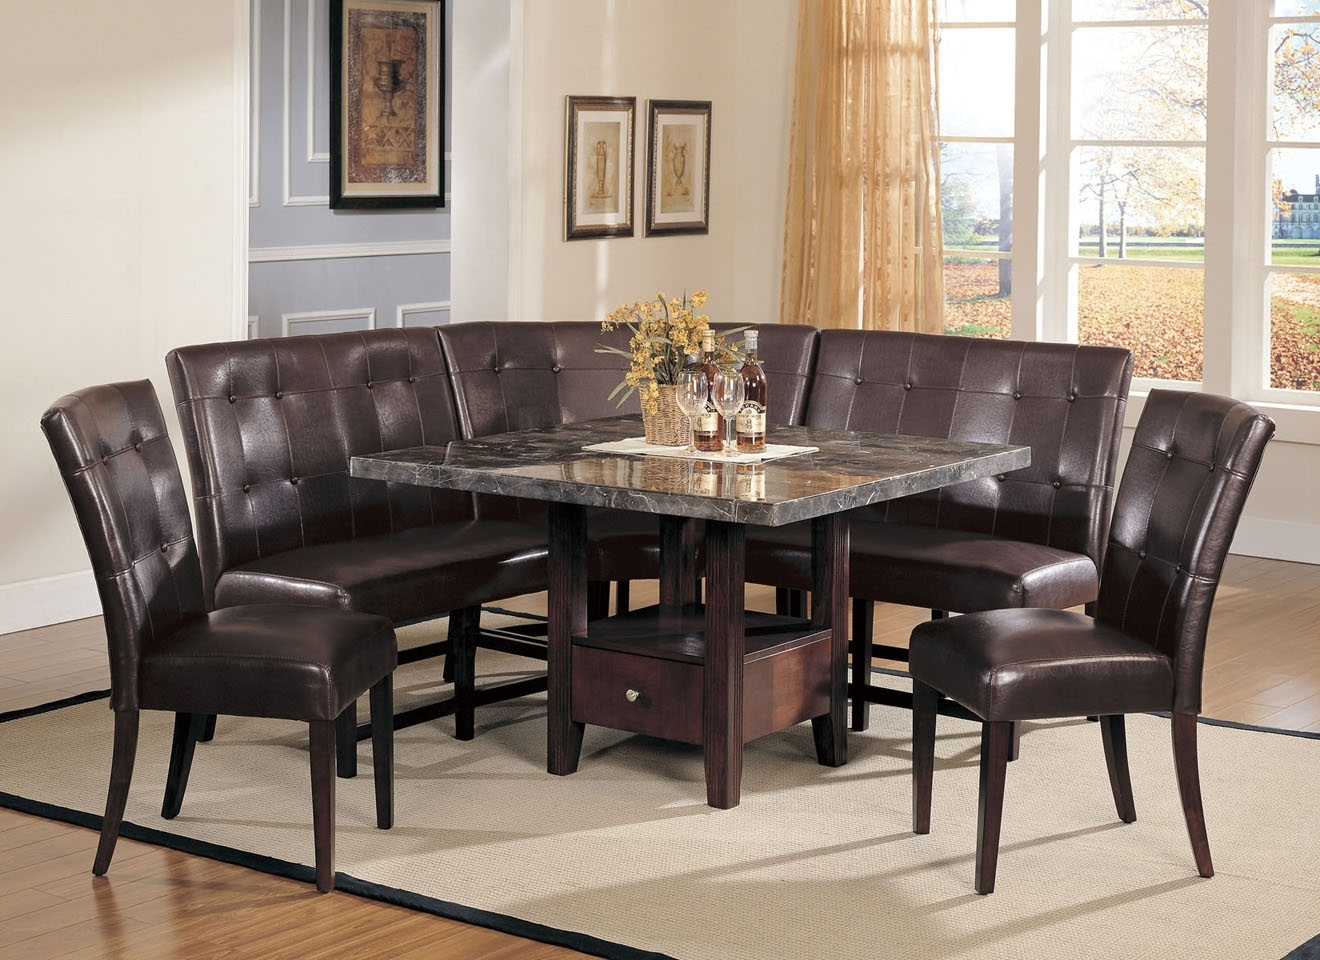 Small Dining Tables And Bench Sets Regarding Current Contemporary Formal Dining Room Sets Dining Table Set With Bench (View 20 of 25)